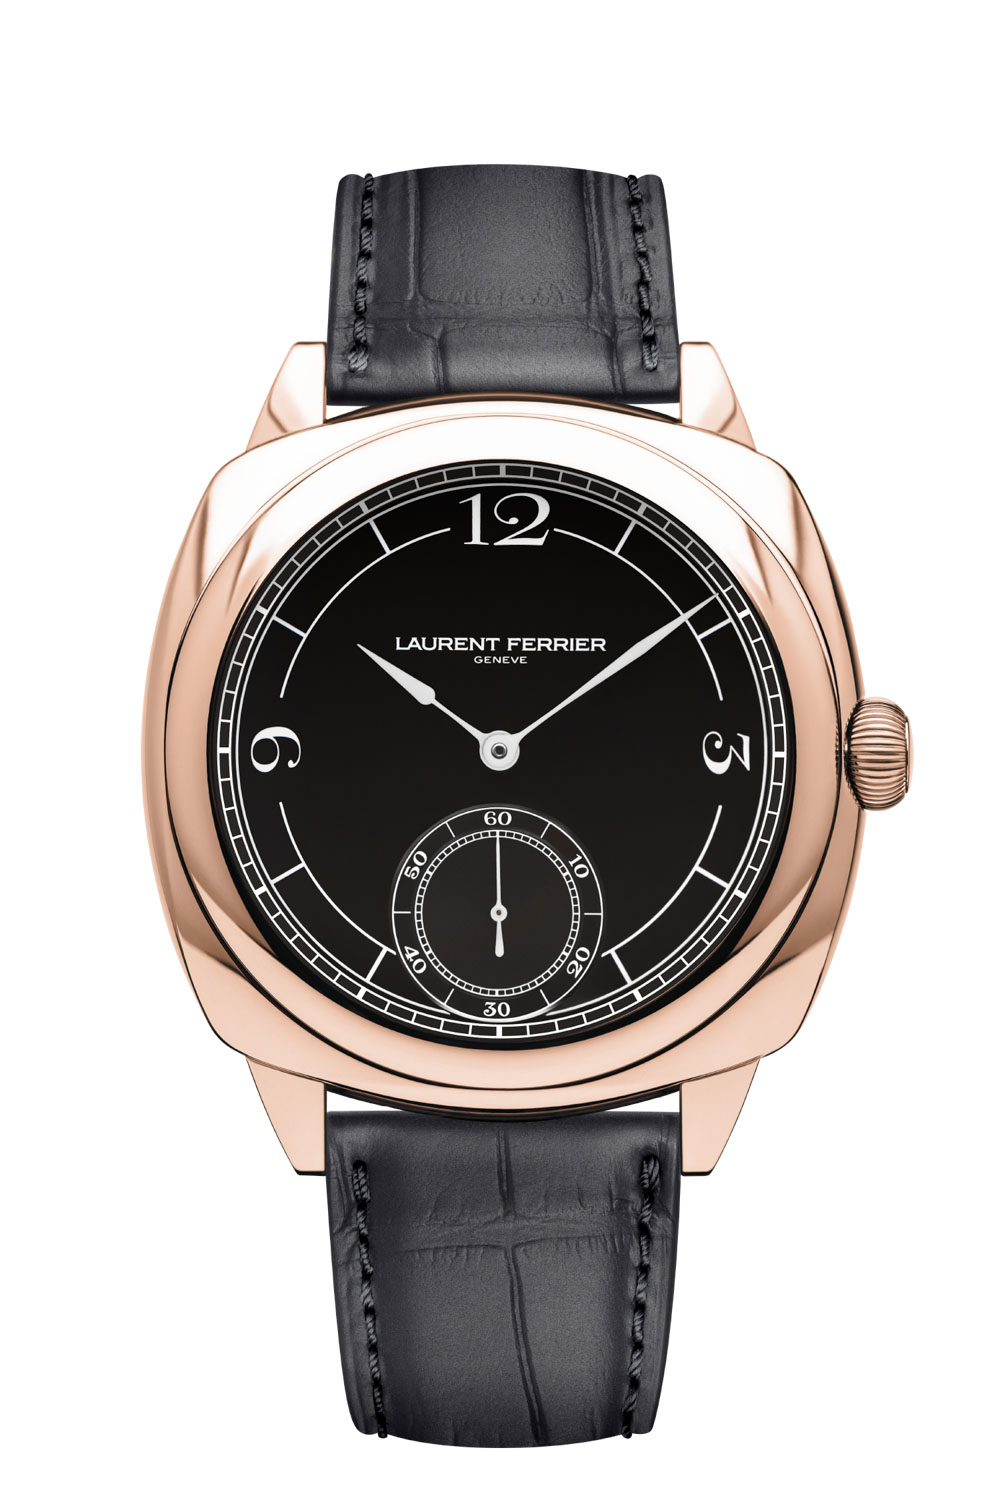 The 2021 Laurent Ferrier Square Micro-Rotor in 18K 5N red gold